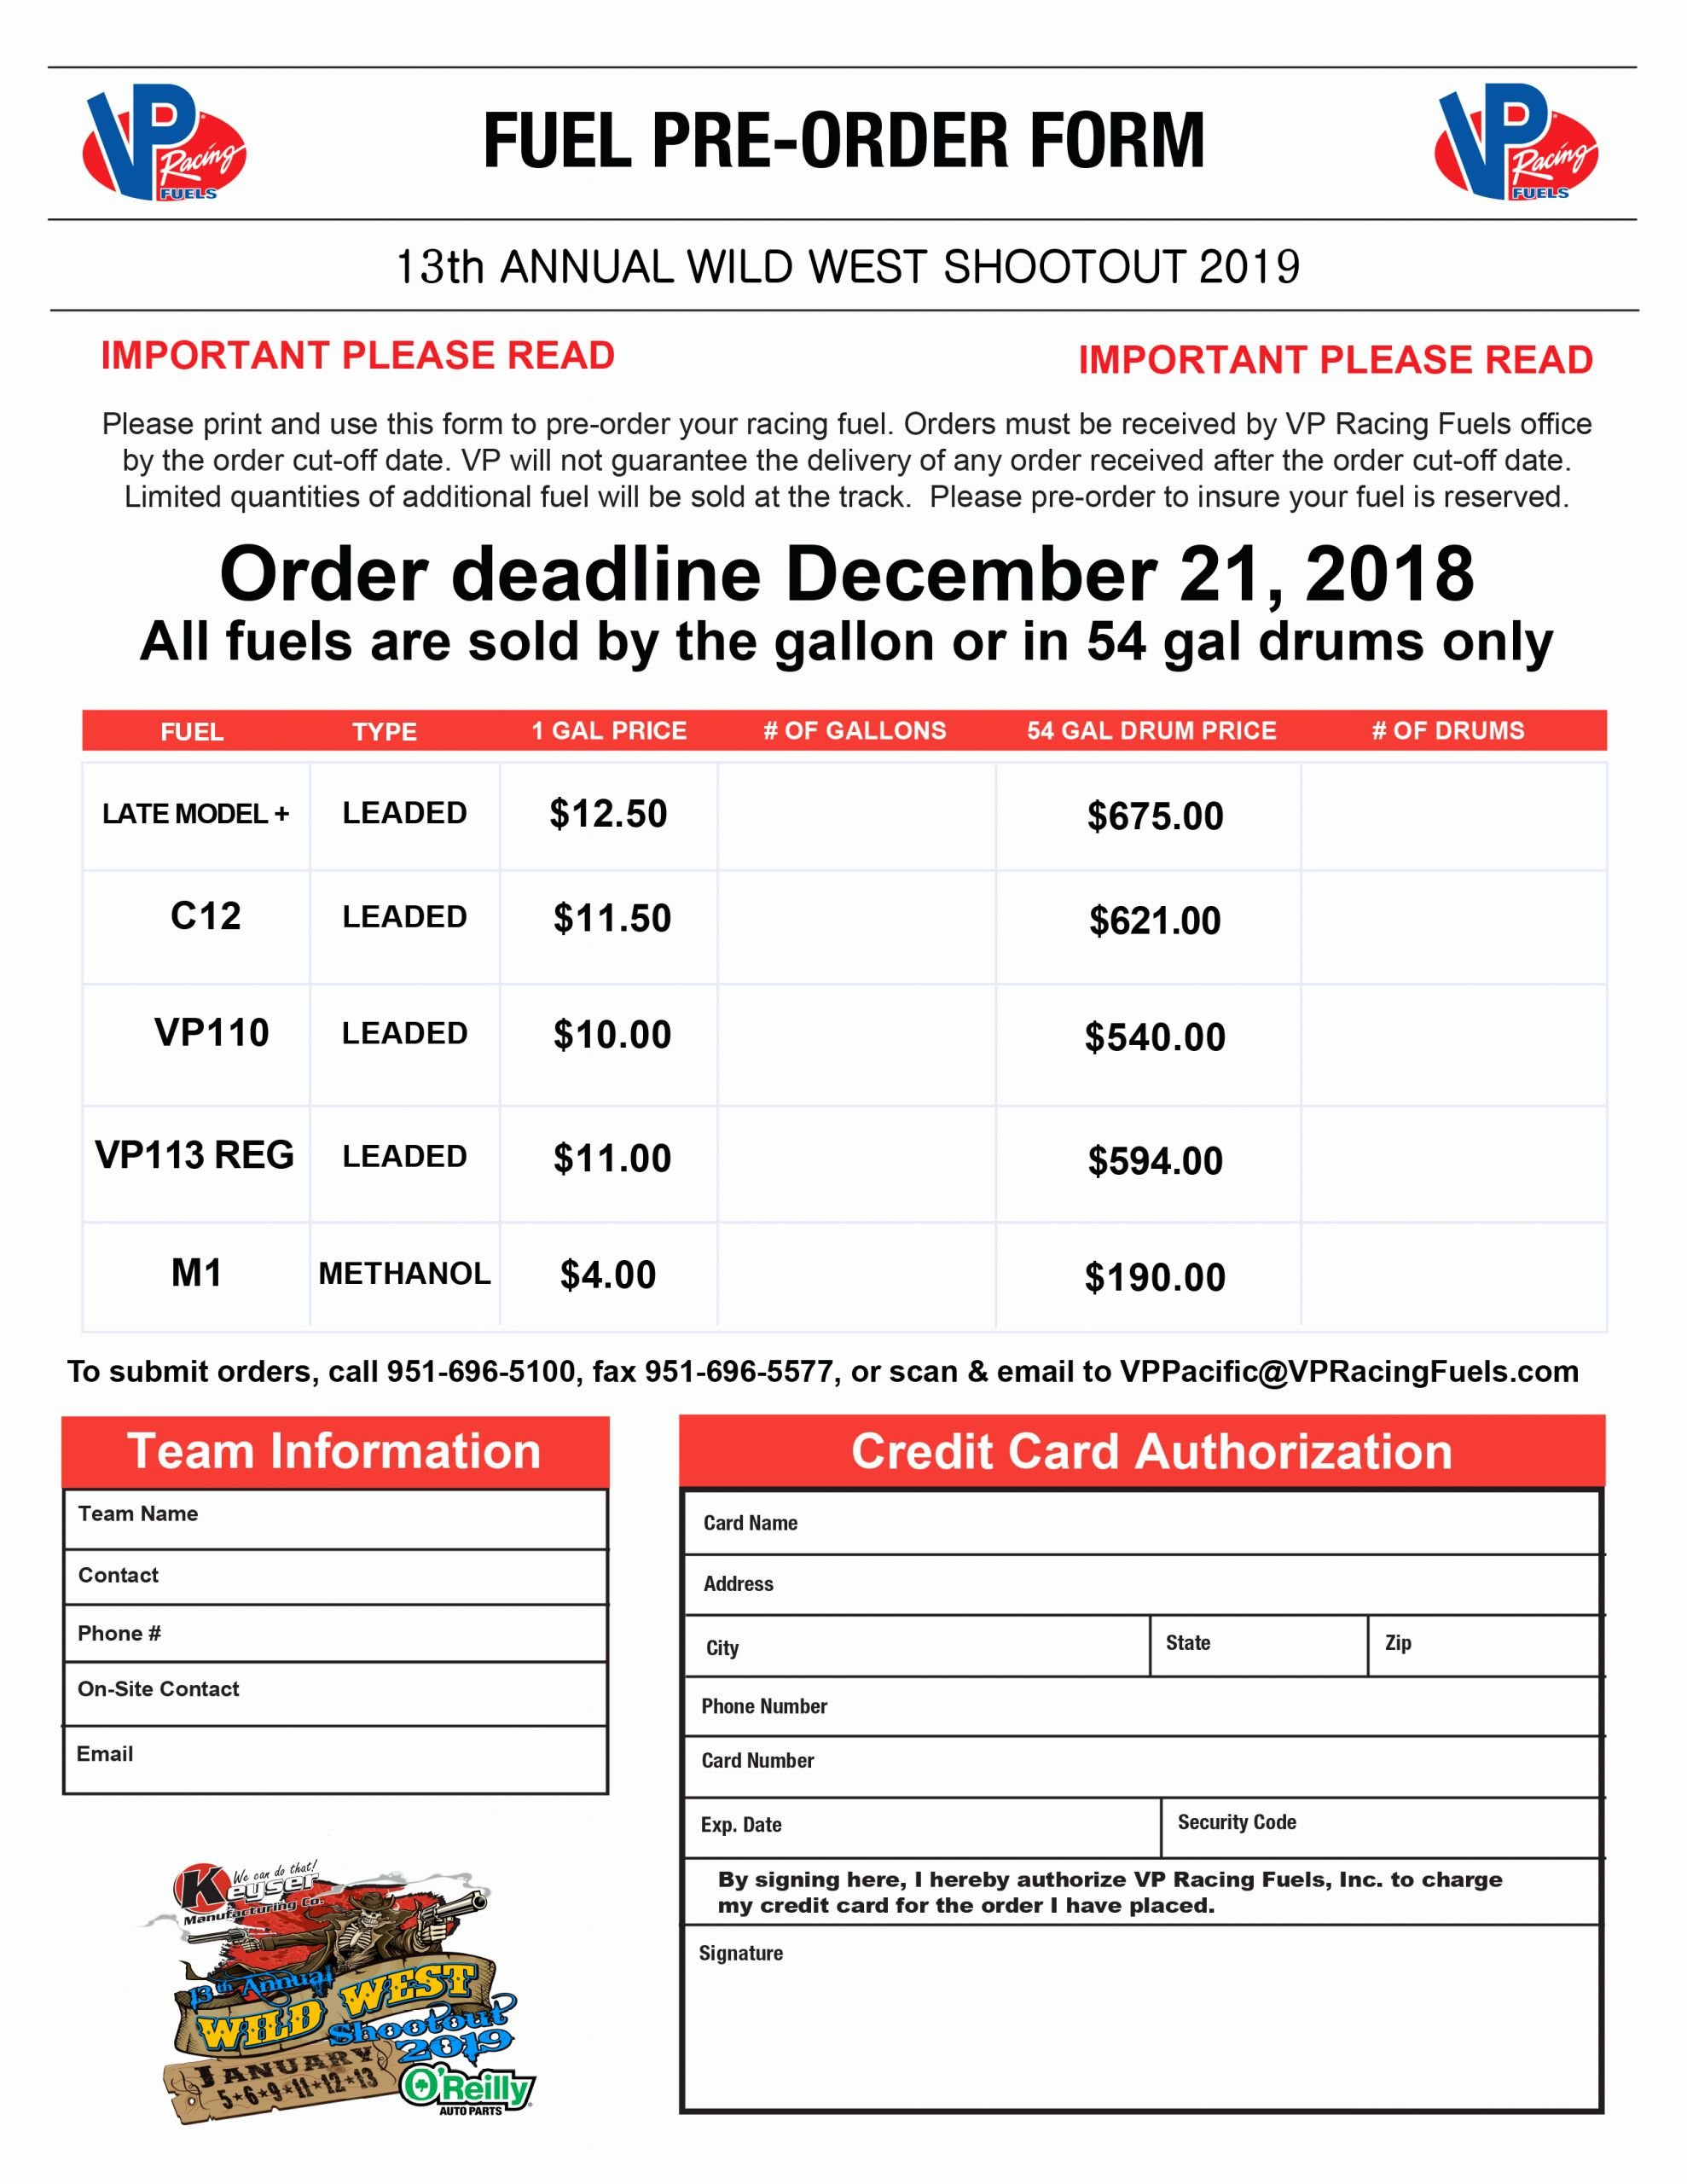 Pre order form Template Free Beautiful Vp Fuel Pre order form the Wild West Shootout